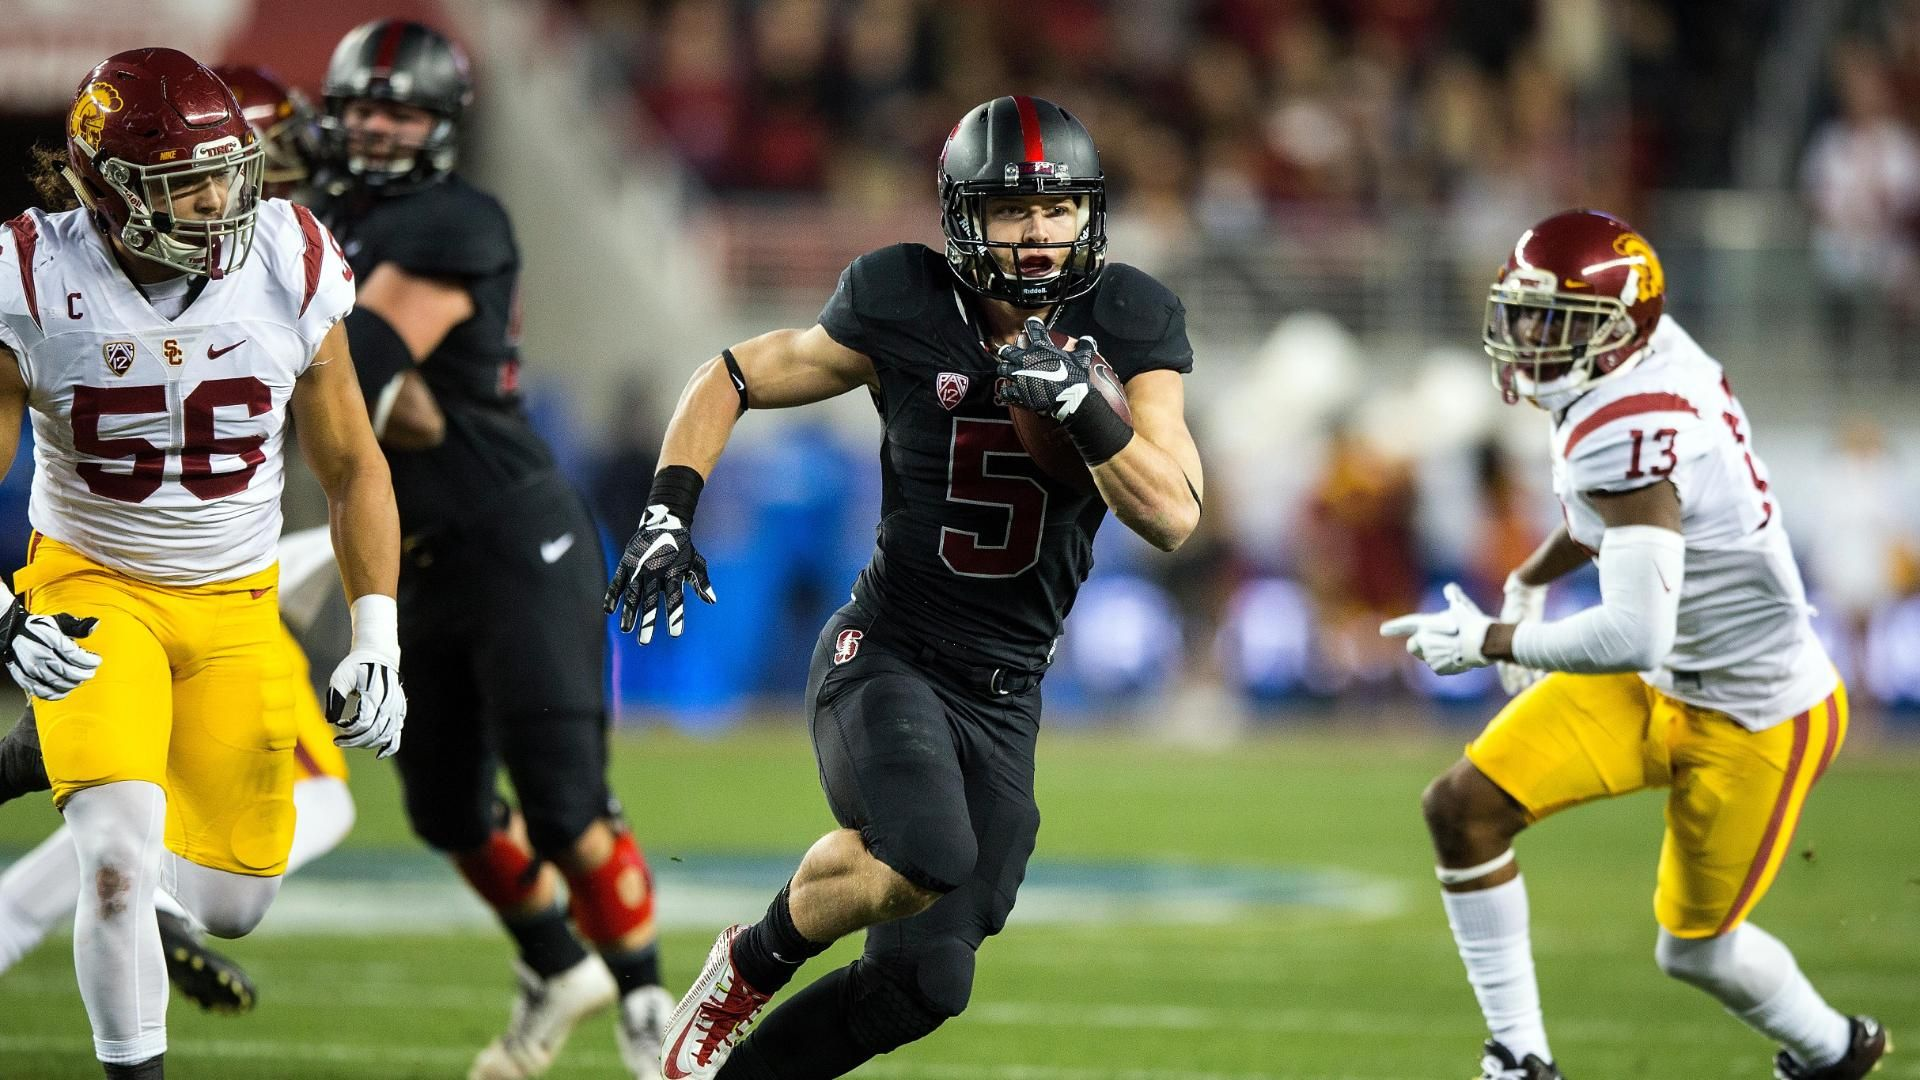 McCaffrey, Stanford roll to Pac-12 Title